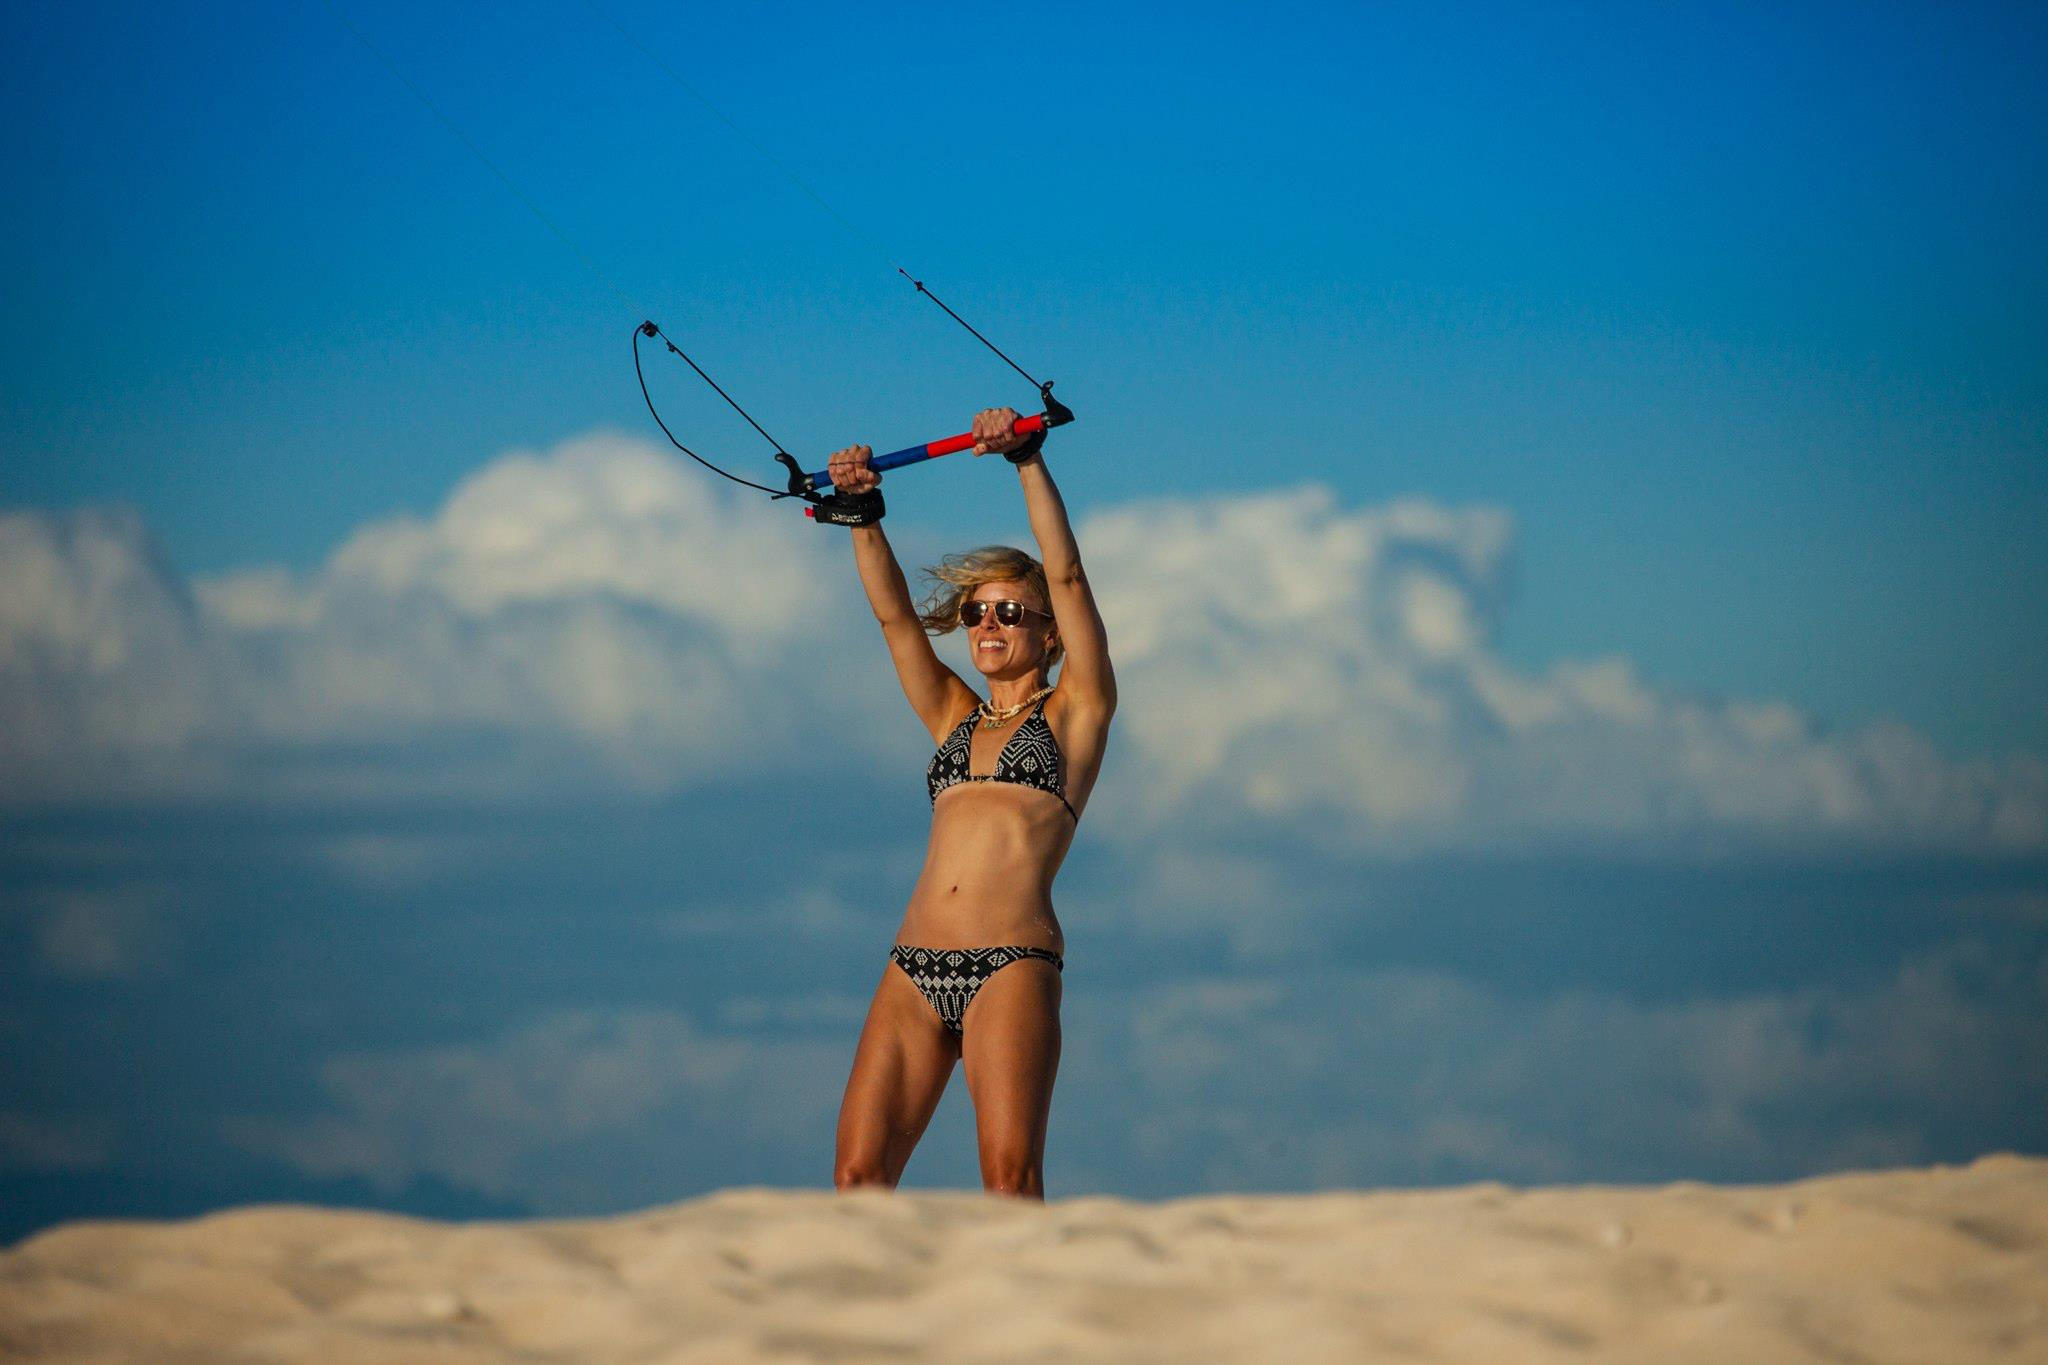 kitesurf (learn to fly the kite)